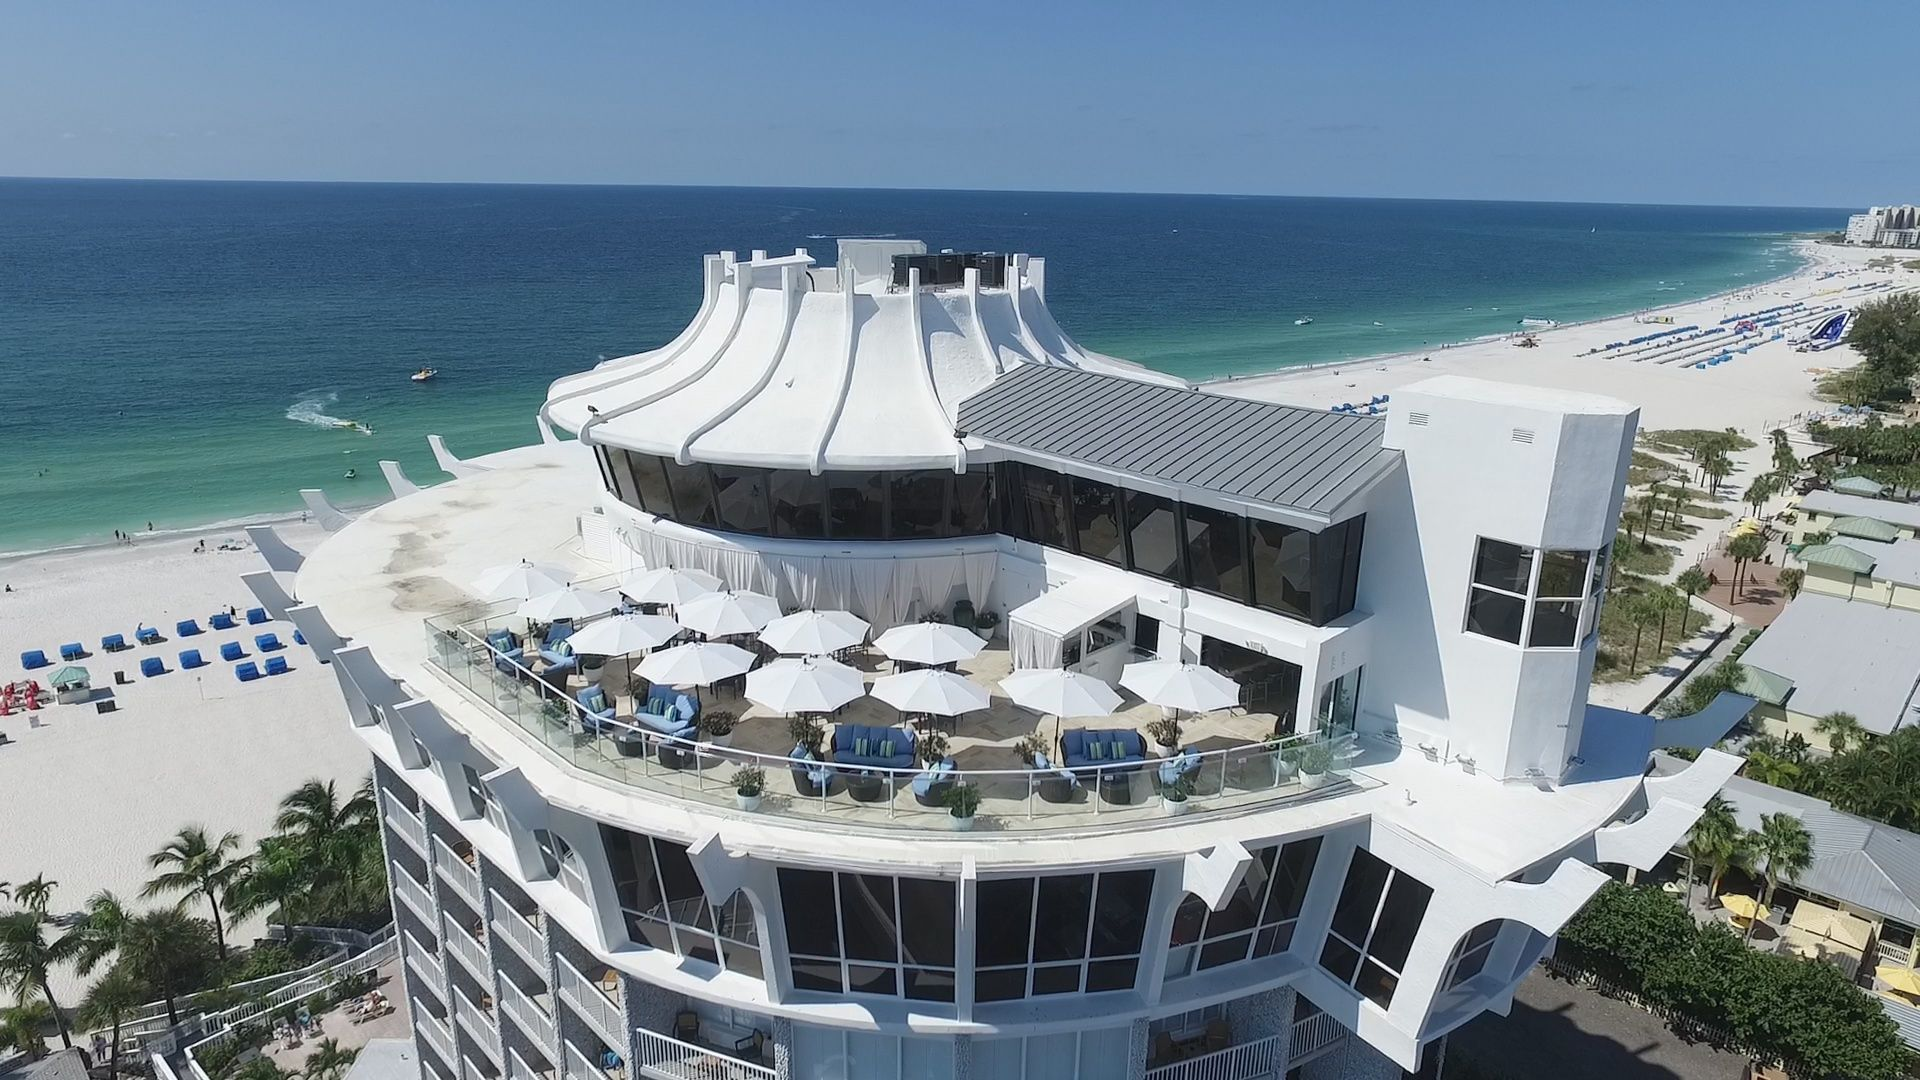 Level 11 St Pete Beach The Best Beaches In World